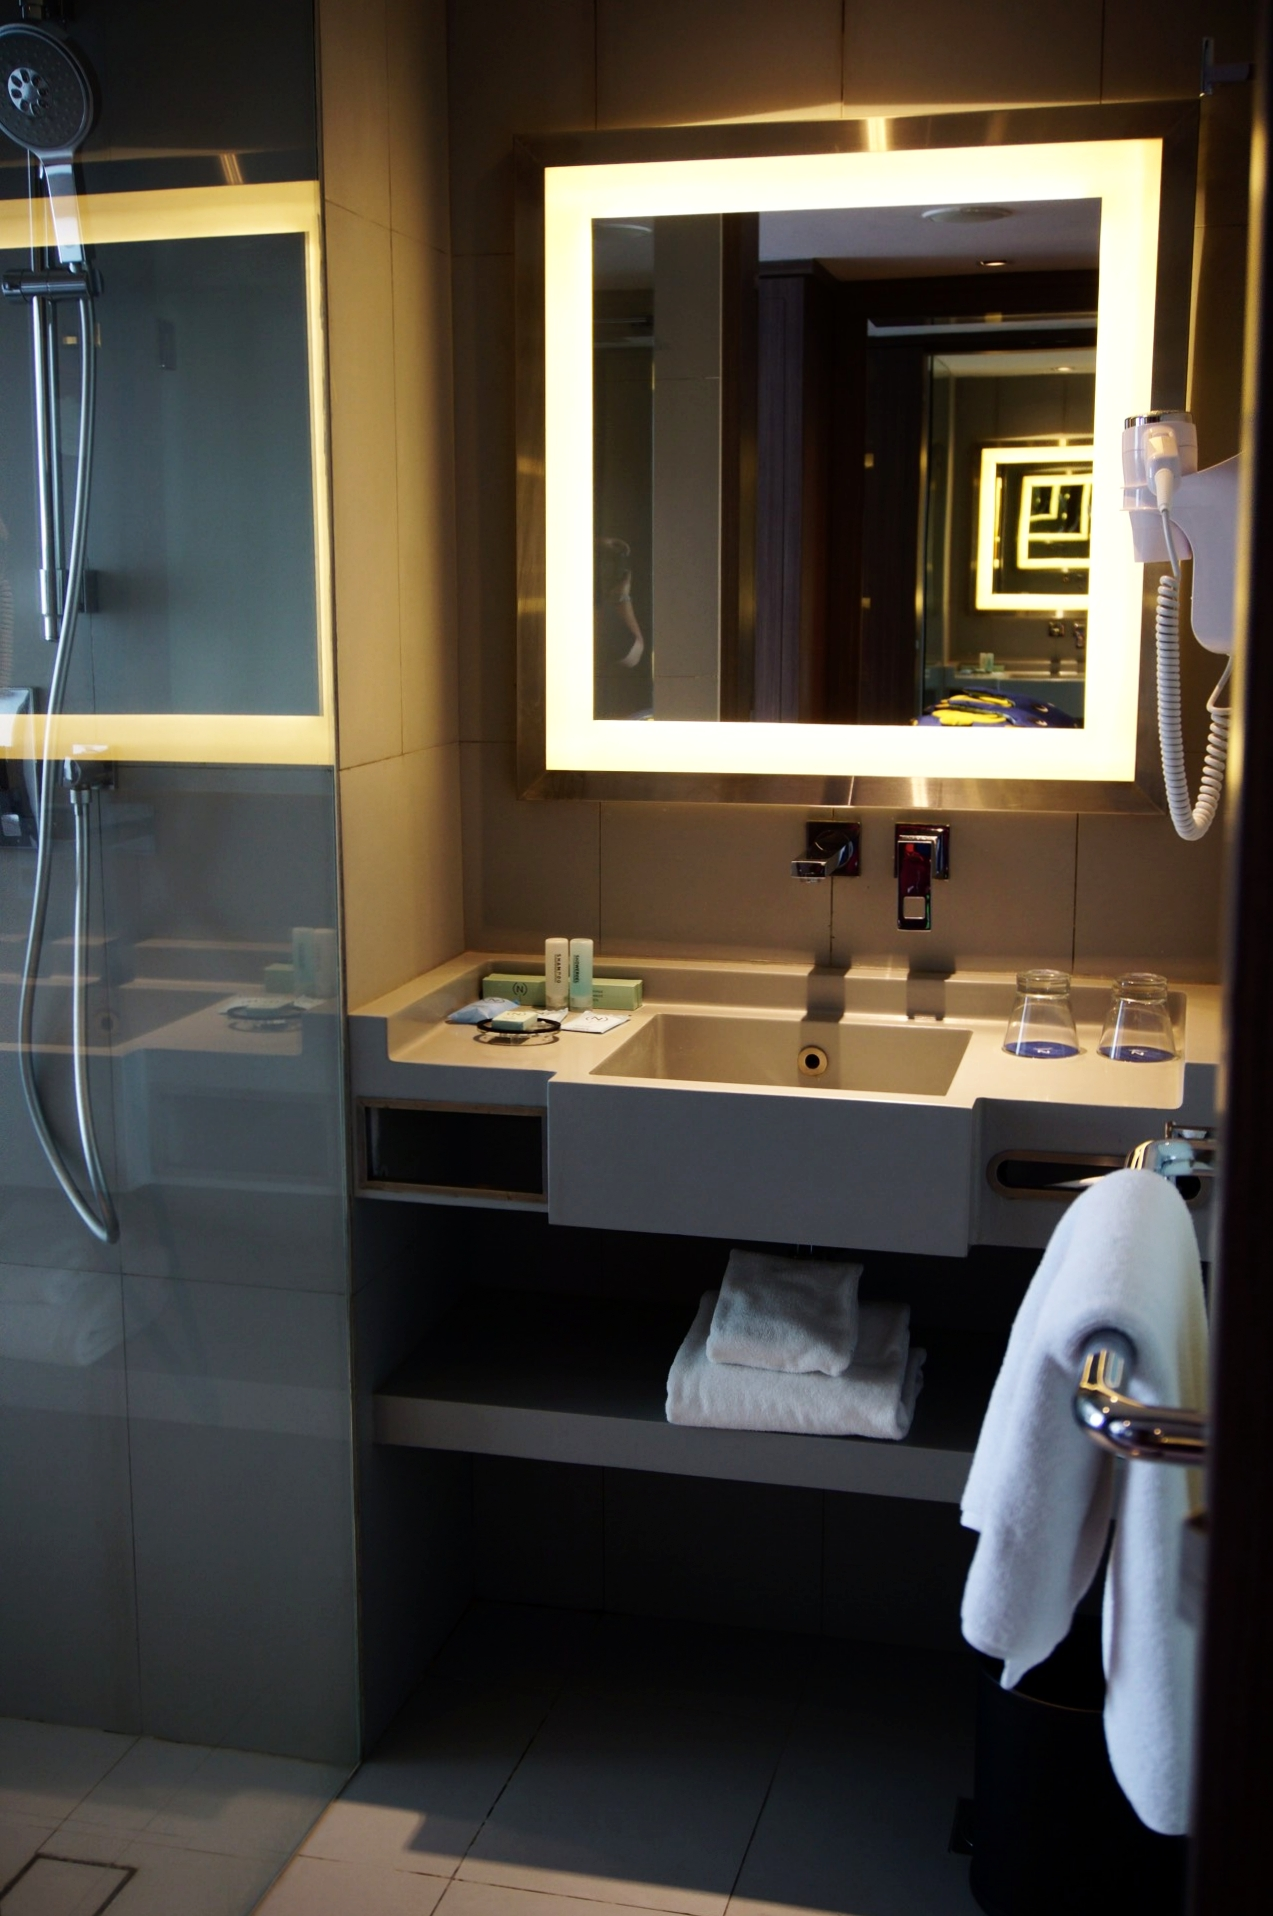 Novotel Bali Airport Bathroom